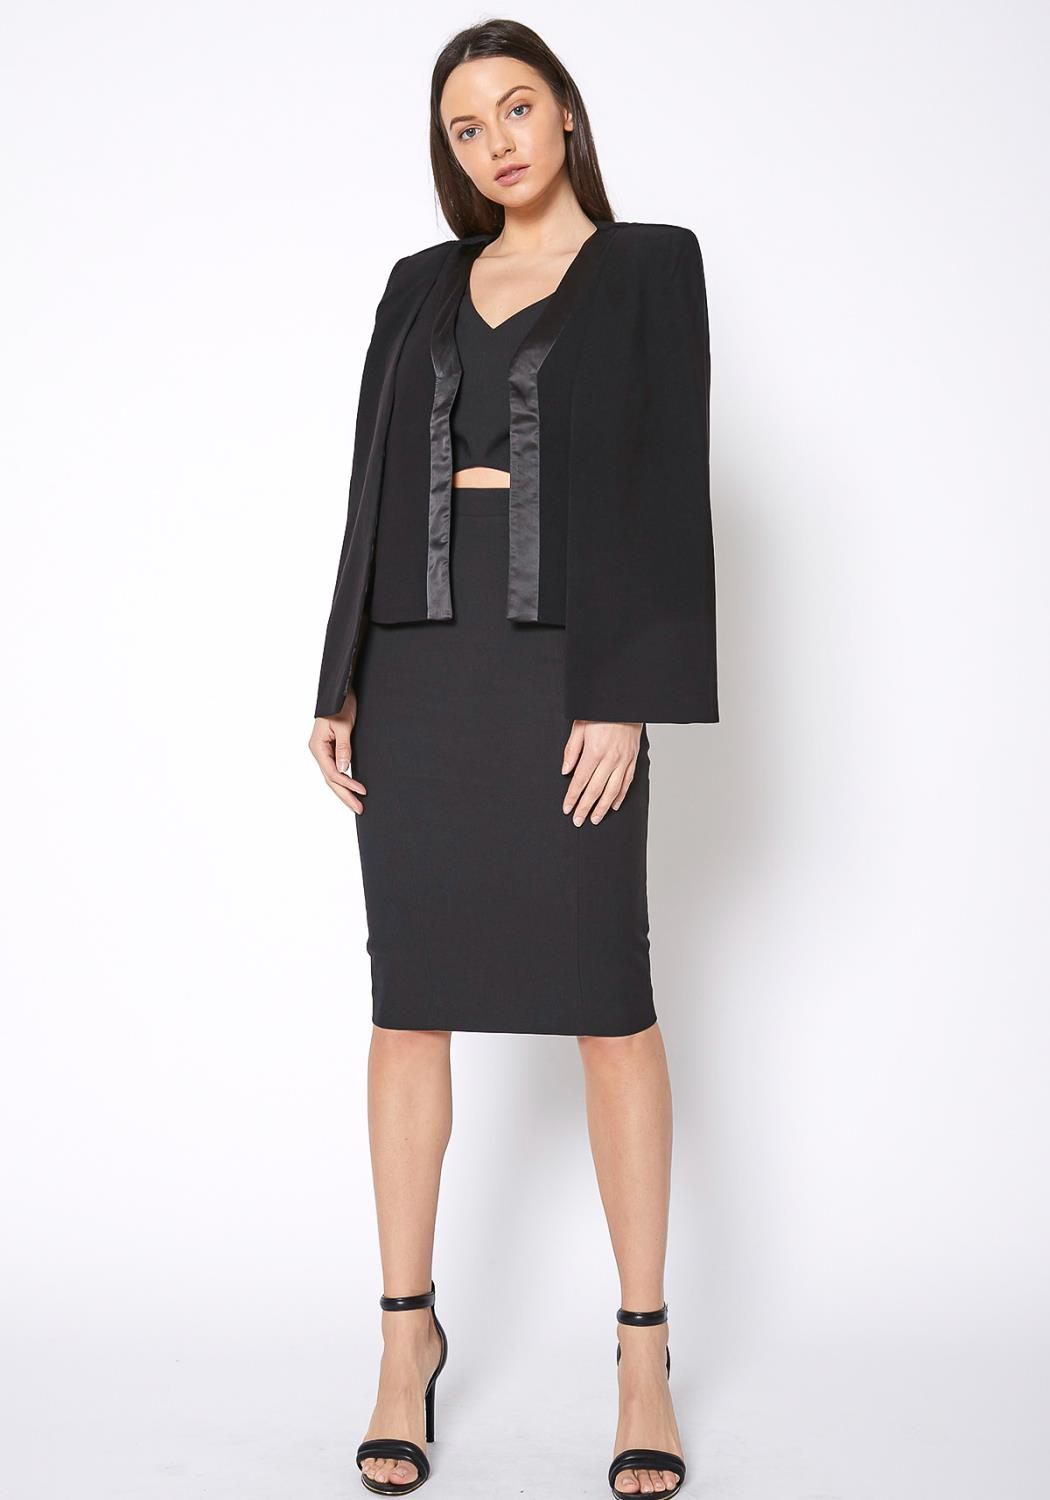 RO & DE Black Satin Trim Cape Blazer